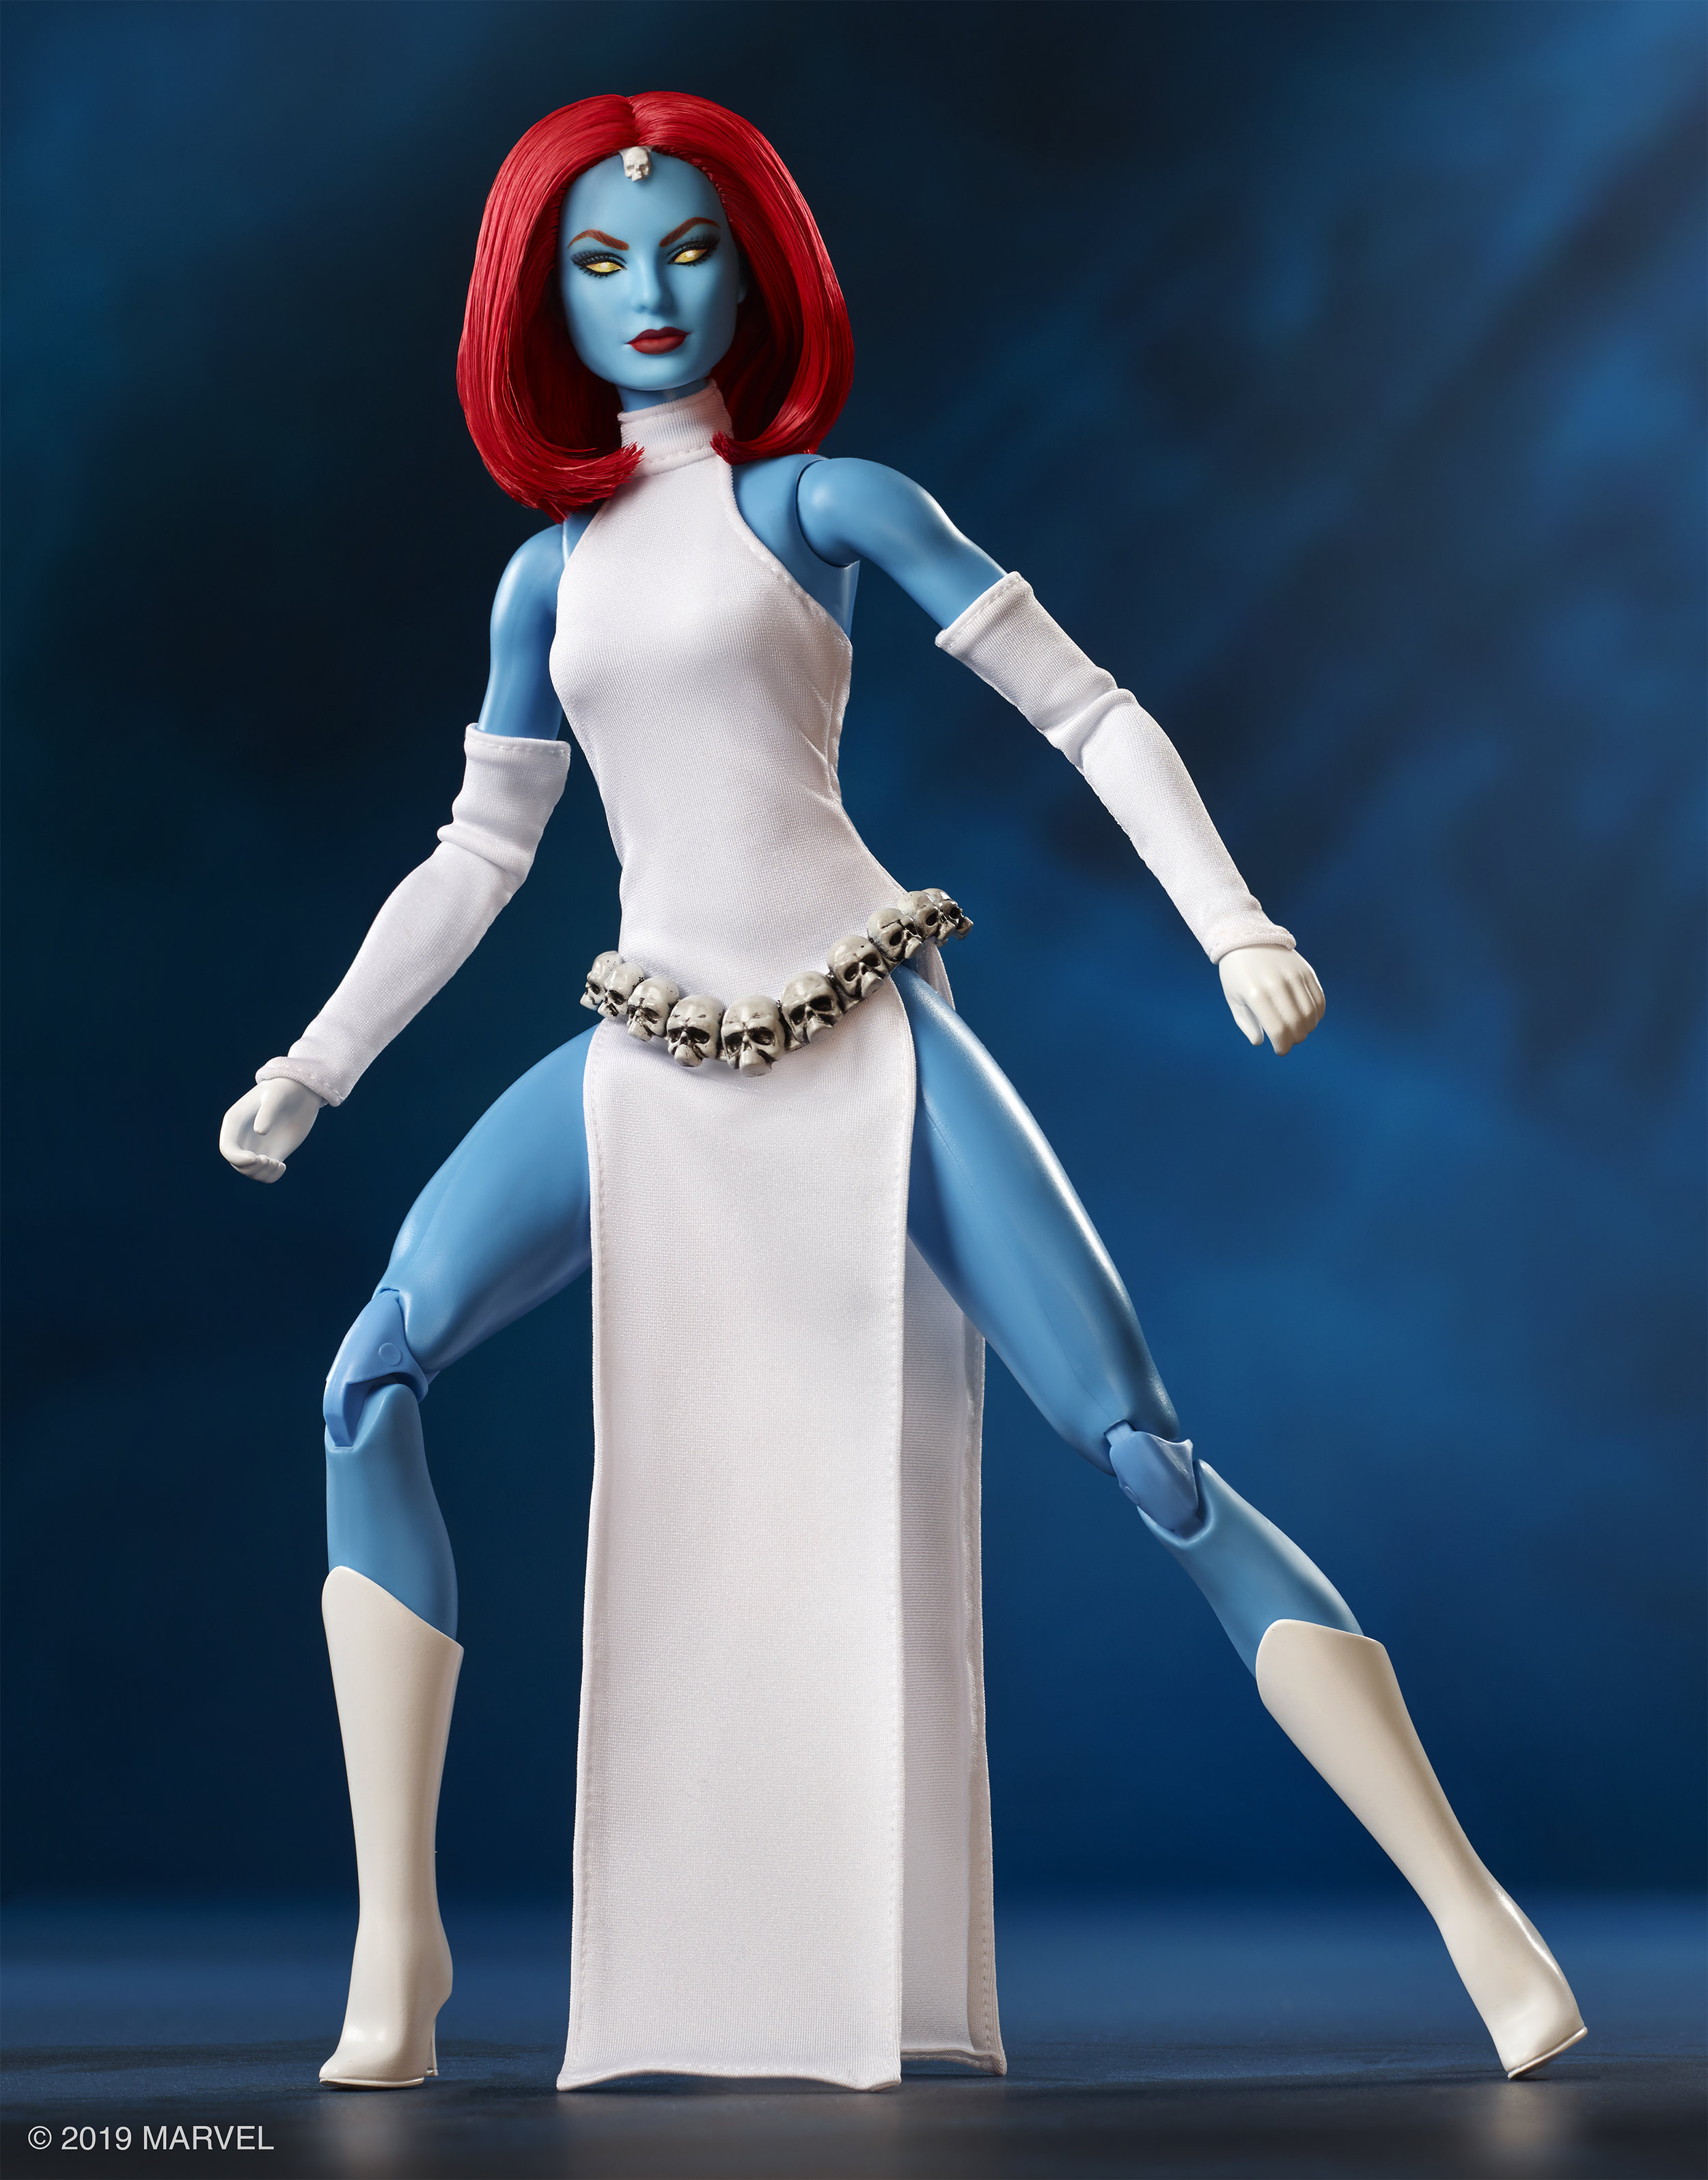 mystique-mattel-barbie-marvel-19-280-1563414599446.jpg